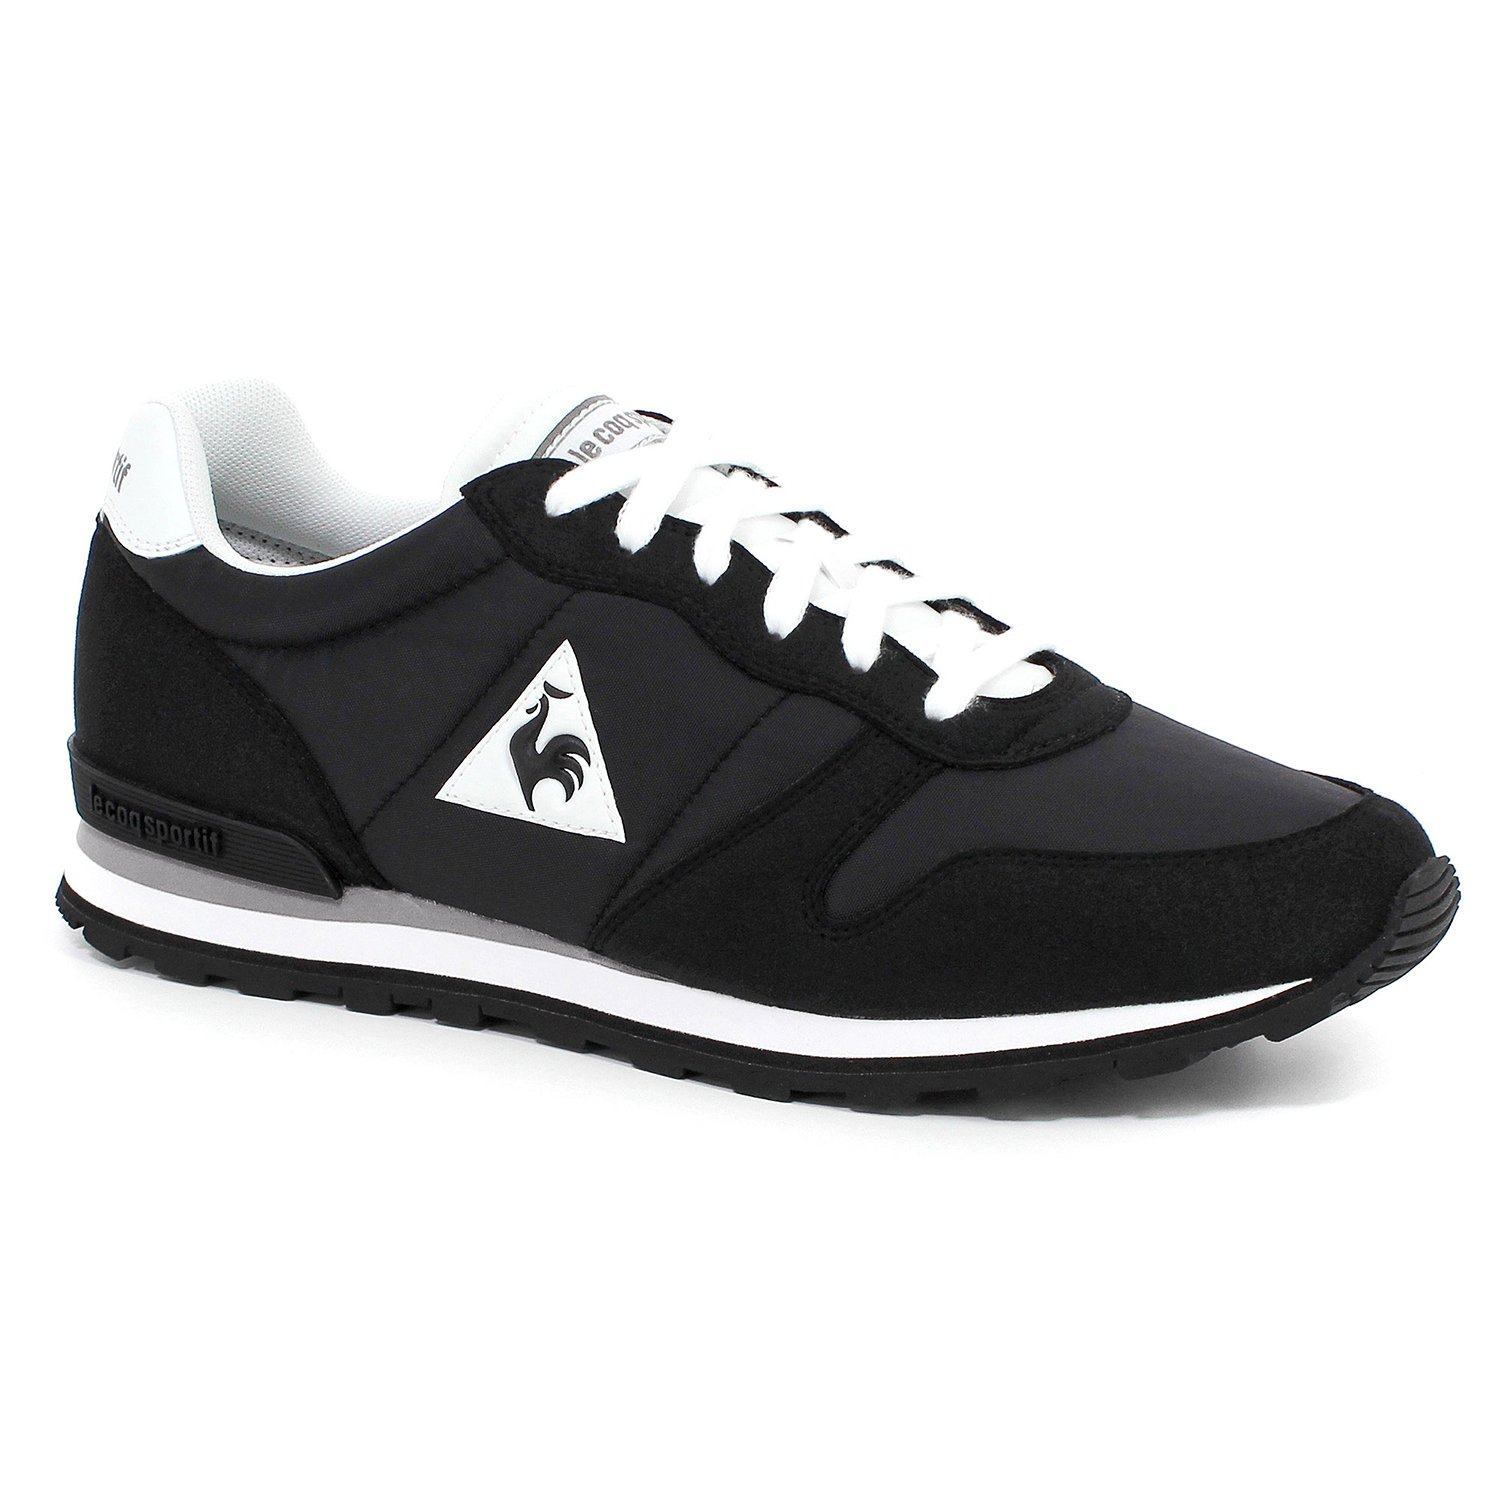 LE COQ SPORTIF SIGMA BLACK 46  Amazon.it  Sport e tempo libero 22f63f75f20